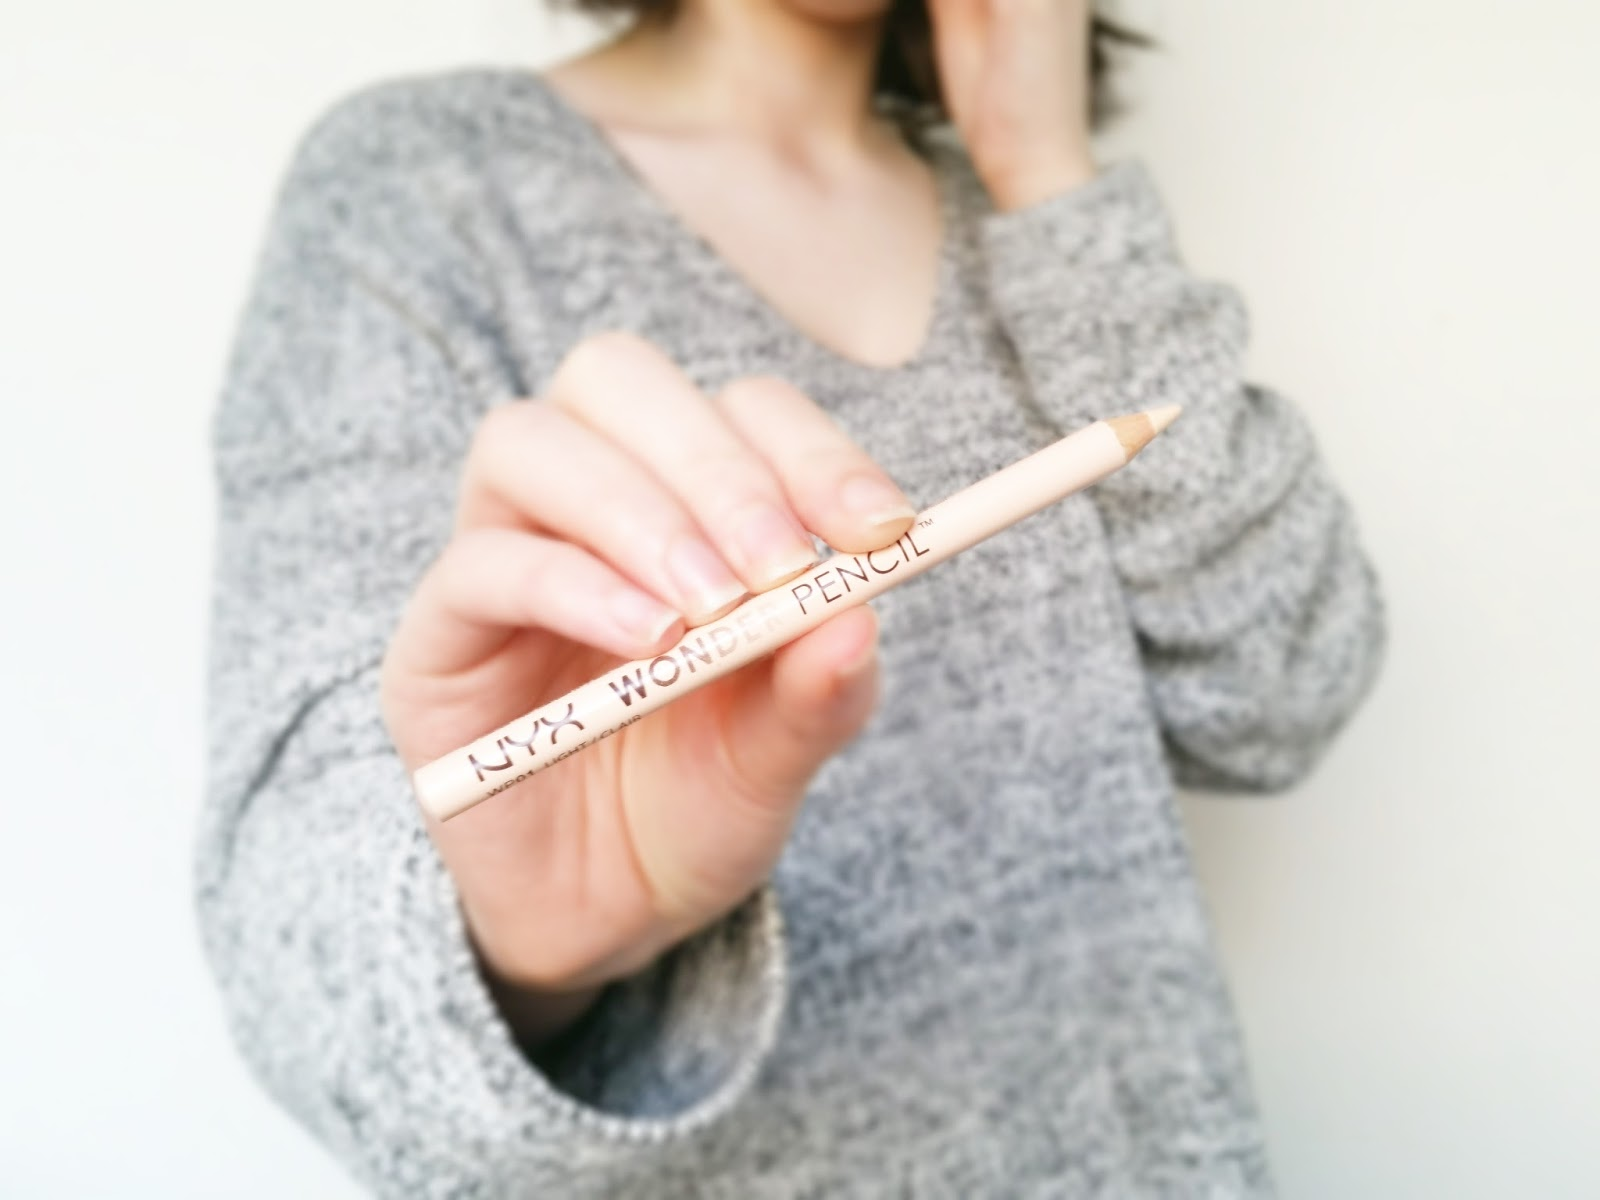 NYX Wonder Pencil review